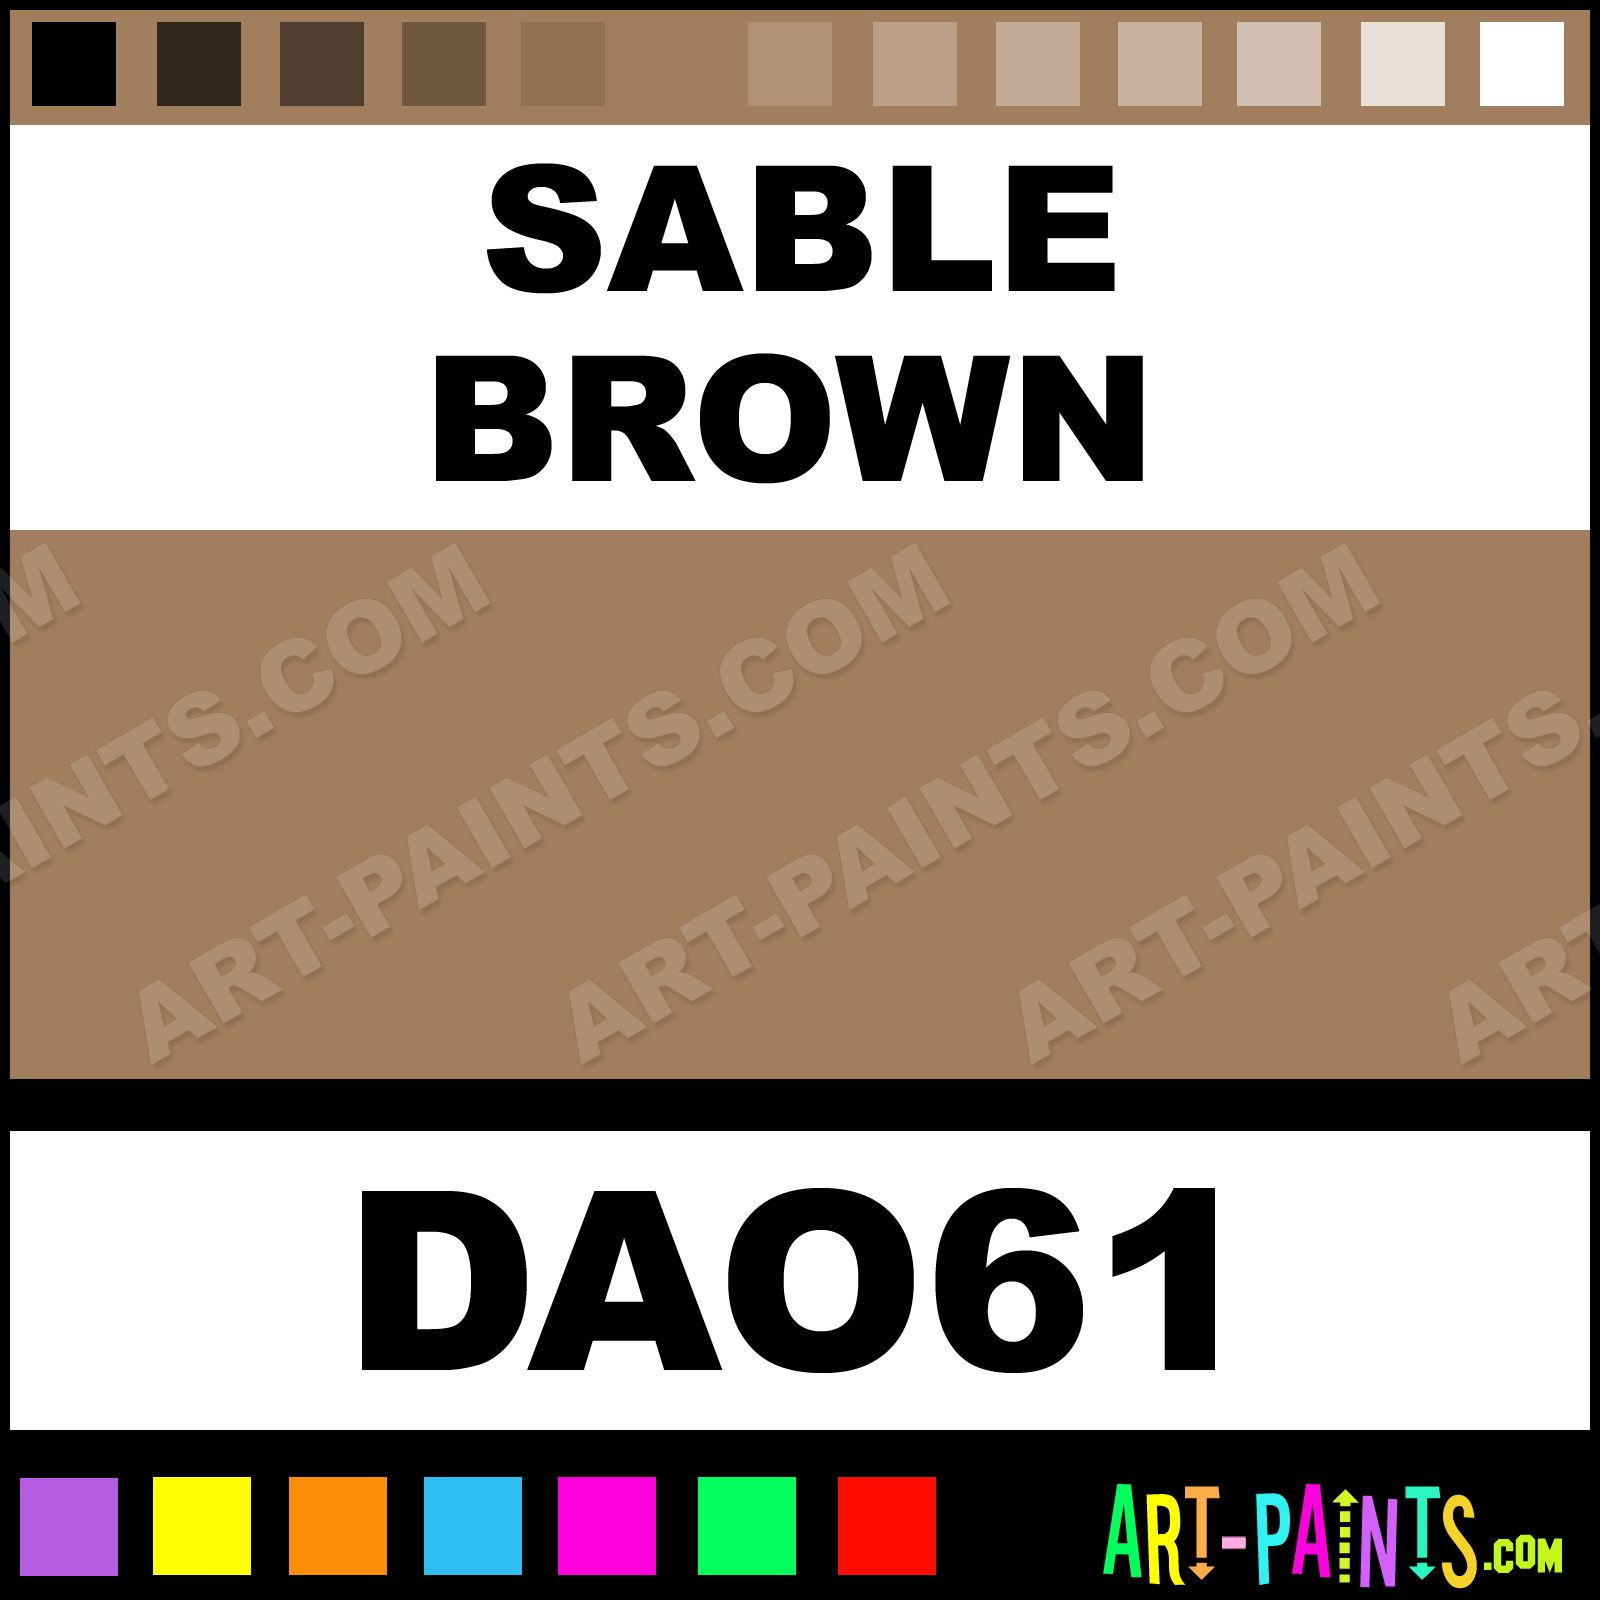 19 64 120 sable brown a17d5d 161 125 93 015 023 orange sepia ad markers paintmarker paints and marking pens sepia paint sepia color chartpak ad markers paint nvjuhfo Choice Image